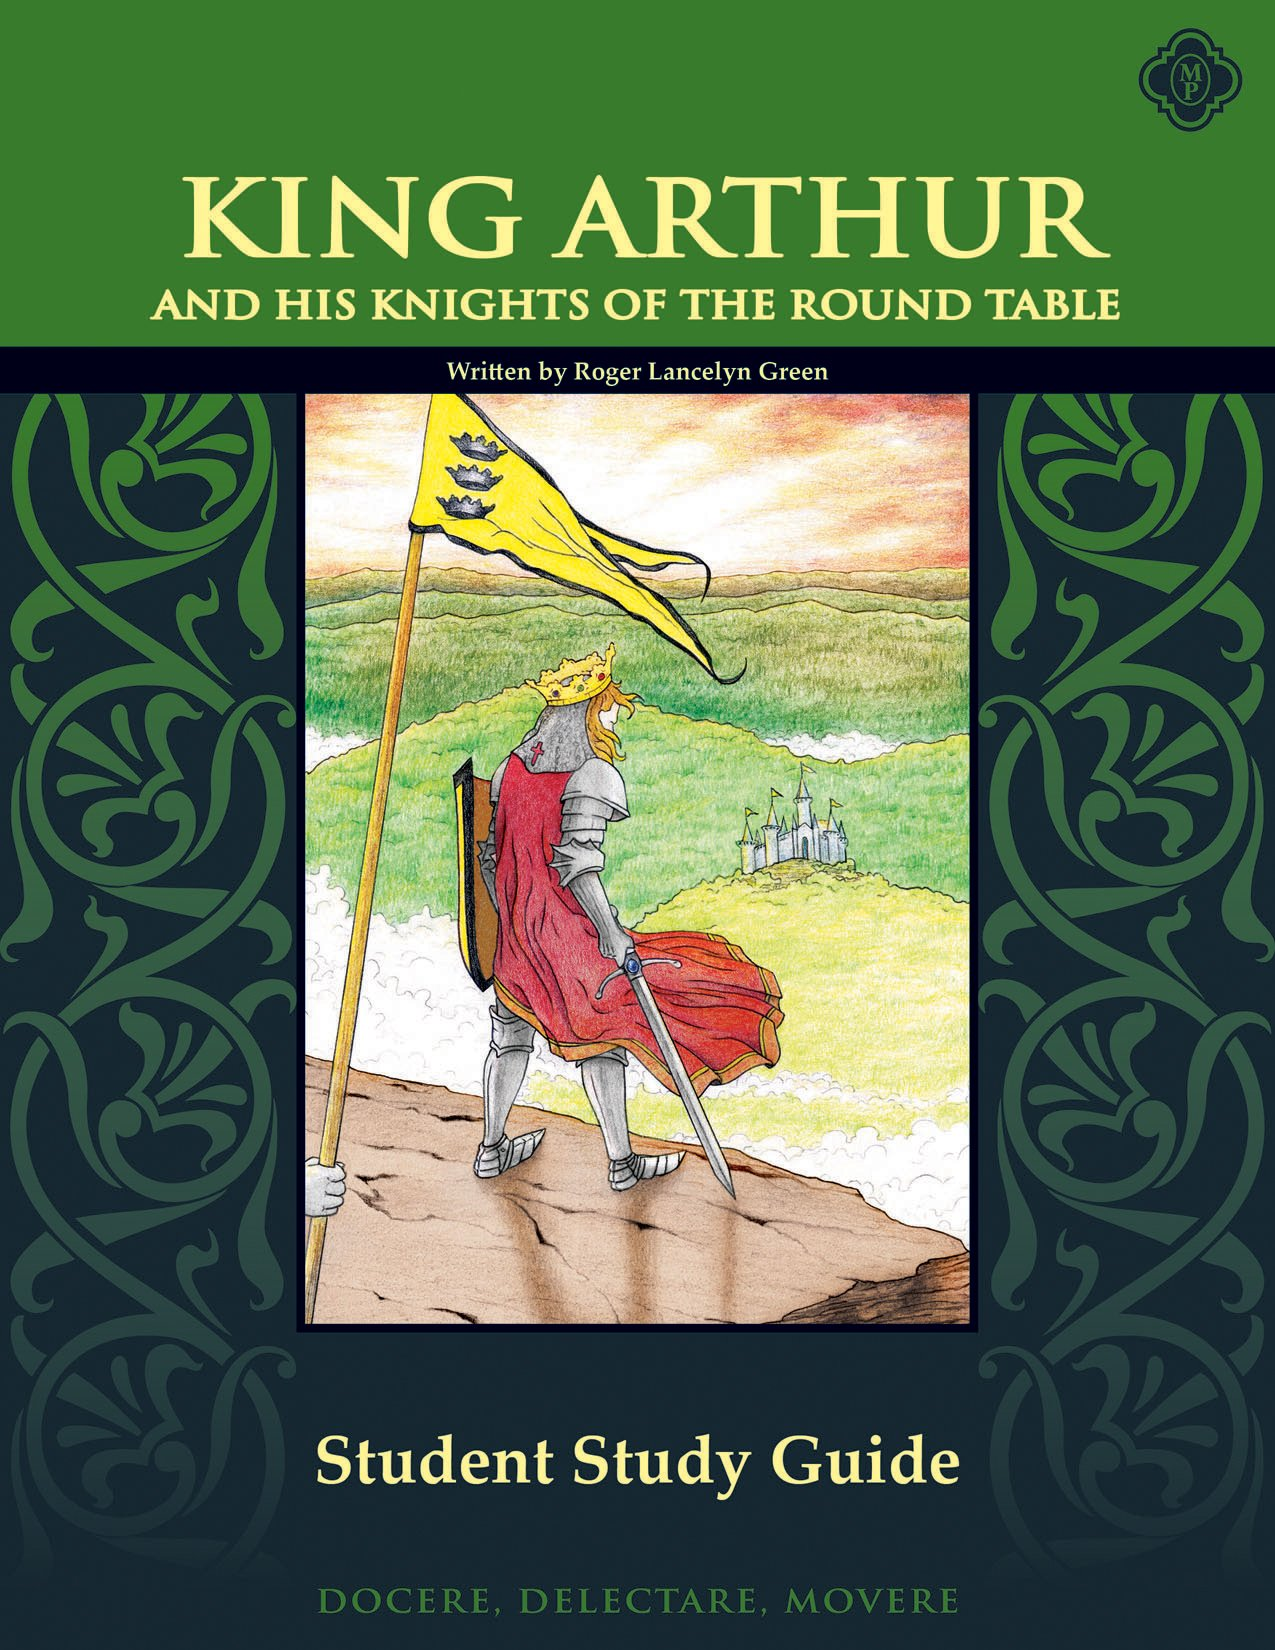 an analysis of the mythical stories of king arthur and his knights of the round table by roger green King arthur and his knights of the round table has 3995 ratings and 245  reviews jana said: as retellings of arthurian myth go, this one is pretty strai   given the number of scattered king arthur tales, i'm grateful roger lancelyn  green reworked  plot sections 1 and 2: here's a slightly exaggerated  summary: damsel in.